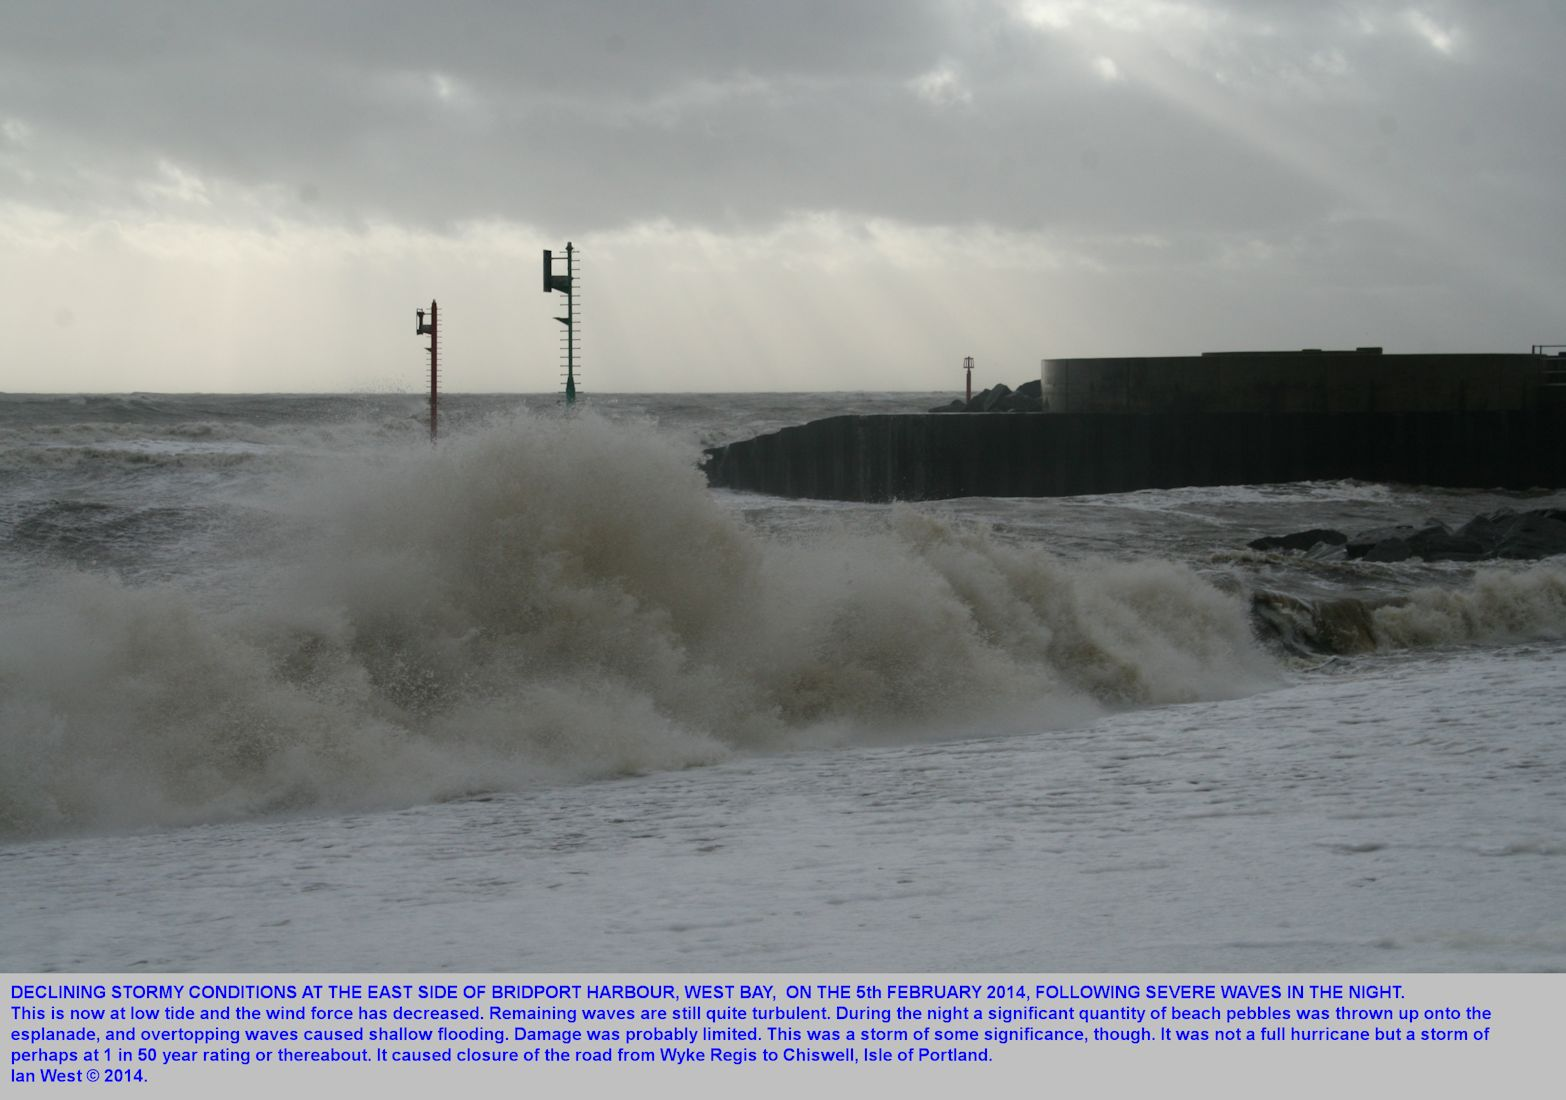 West of the harbour entrance during the declining phase of a storm at West Bay, Bridport, Dorset, 5th February 2014